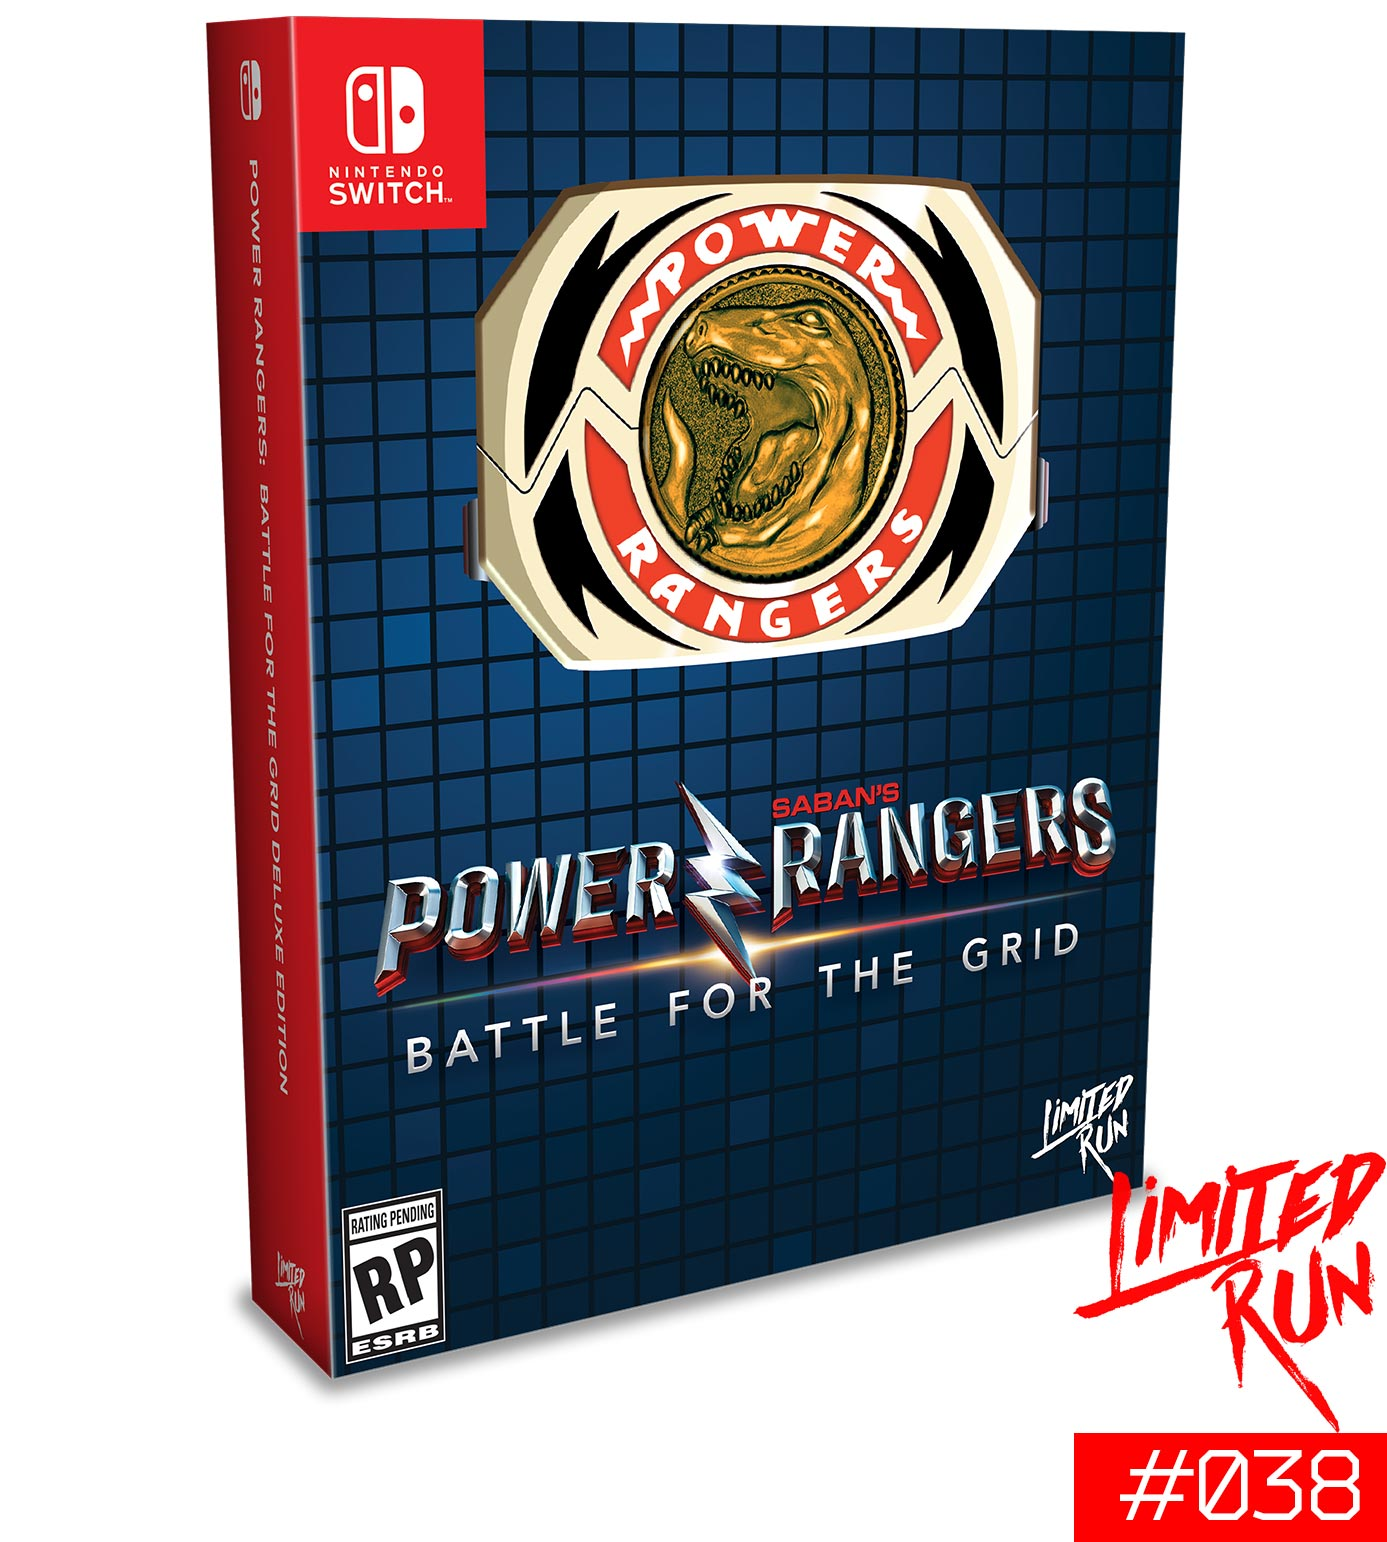 Power Rangers: Battle For the Grid physical release 3 out of 3 image gallery